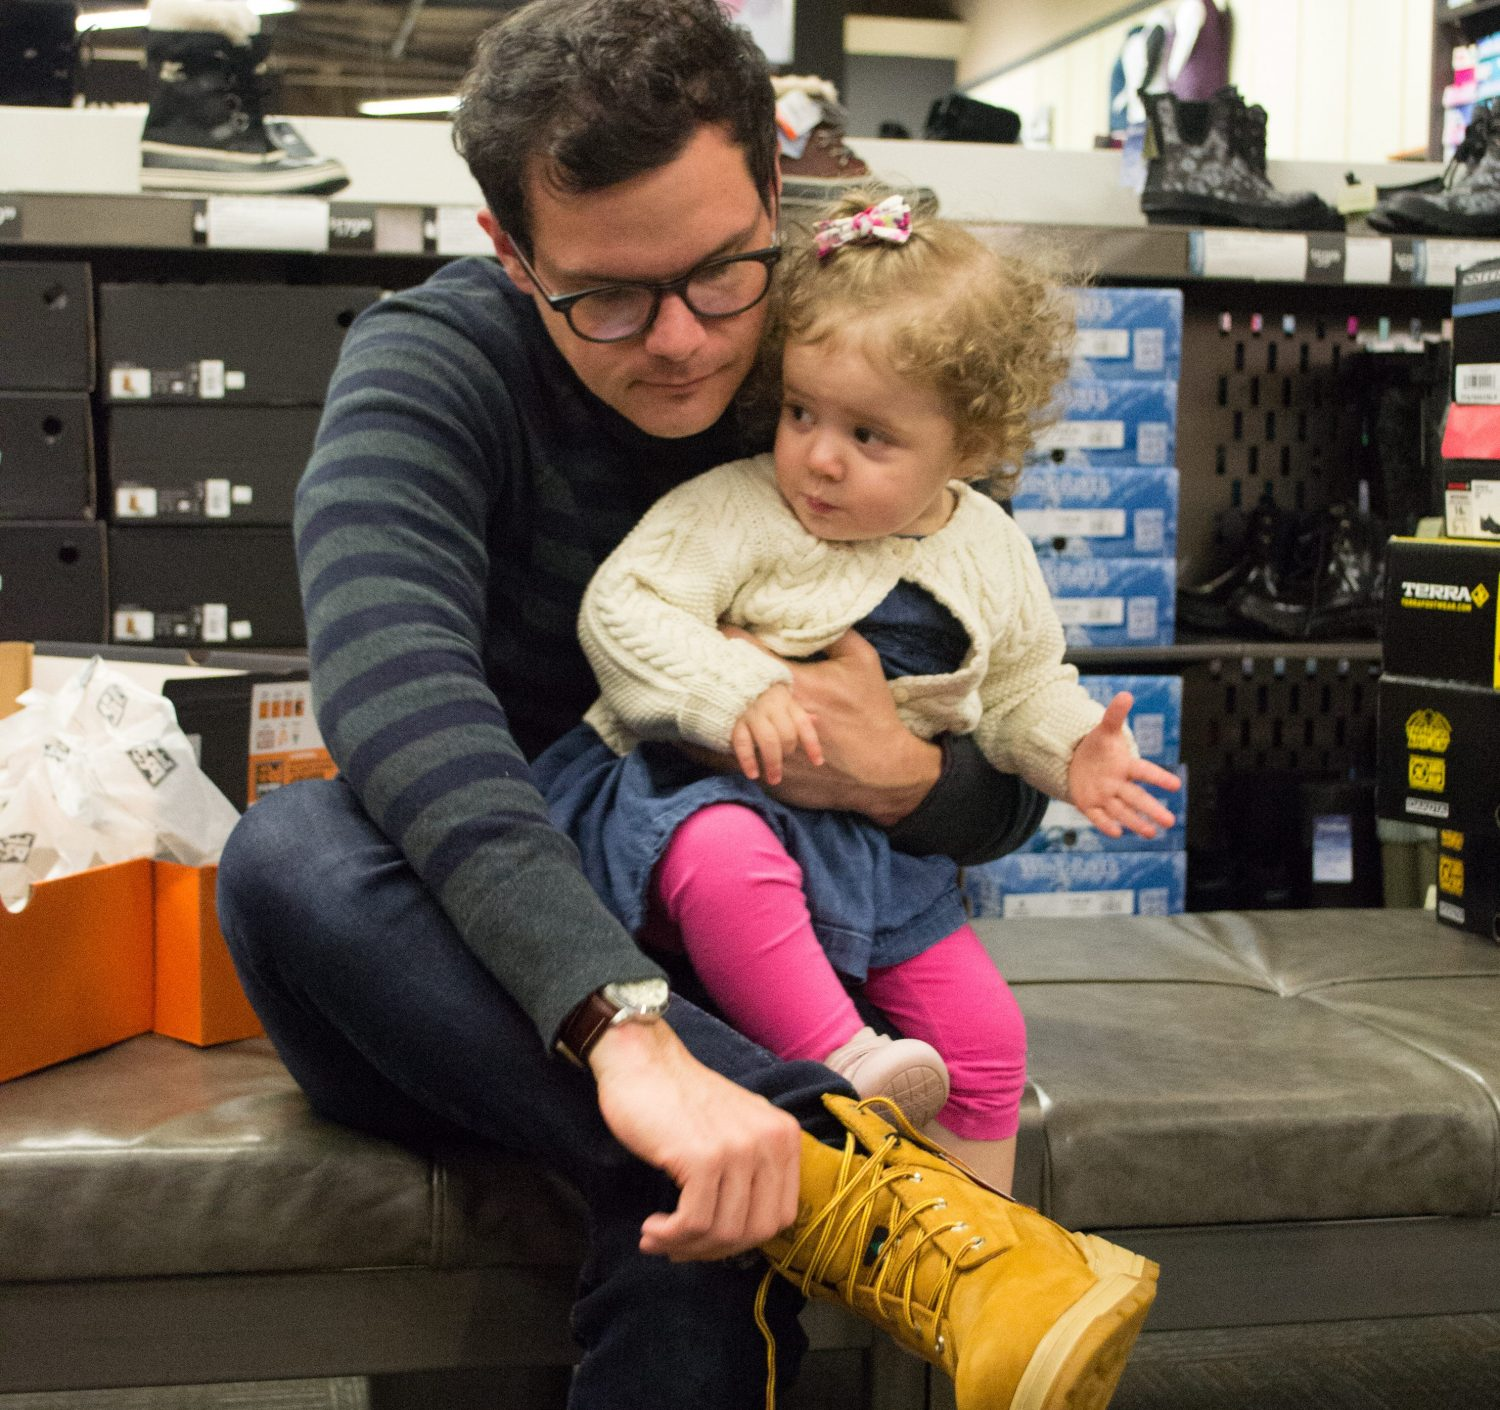 boots shopping, best winter boots, where to buy snow boots, vancouver, dad blogger, james r.c. smith, socialdad, vancouver blogger, canadian bloggers, best dad bloggers, top dad bloggers